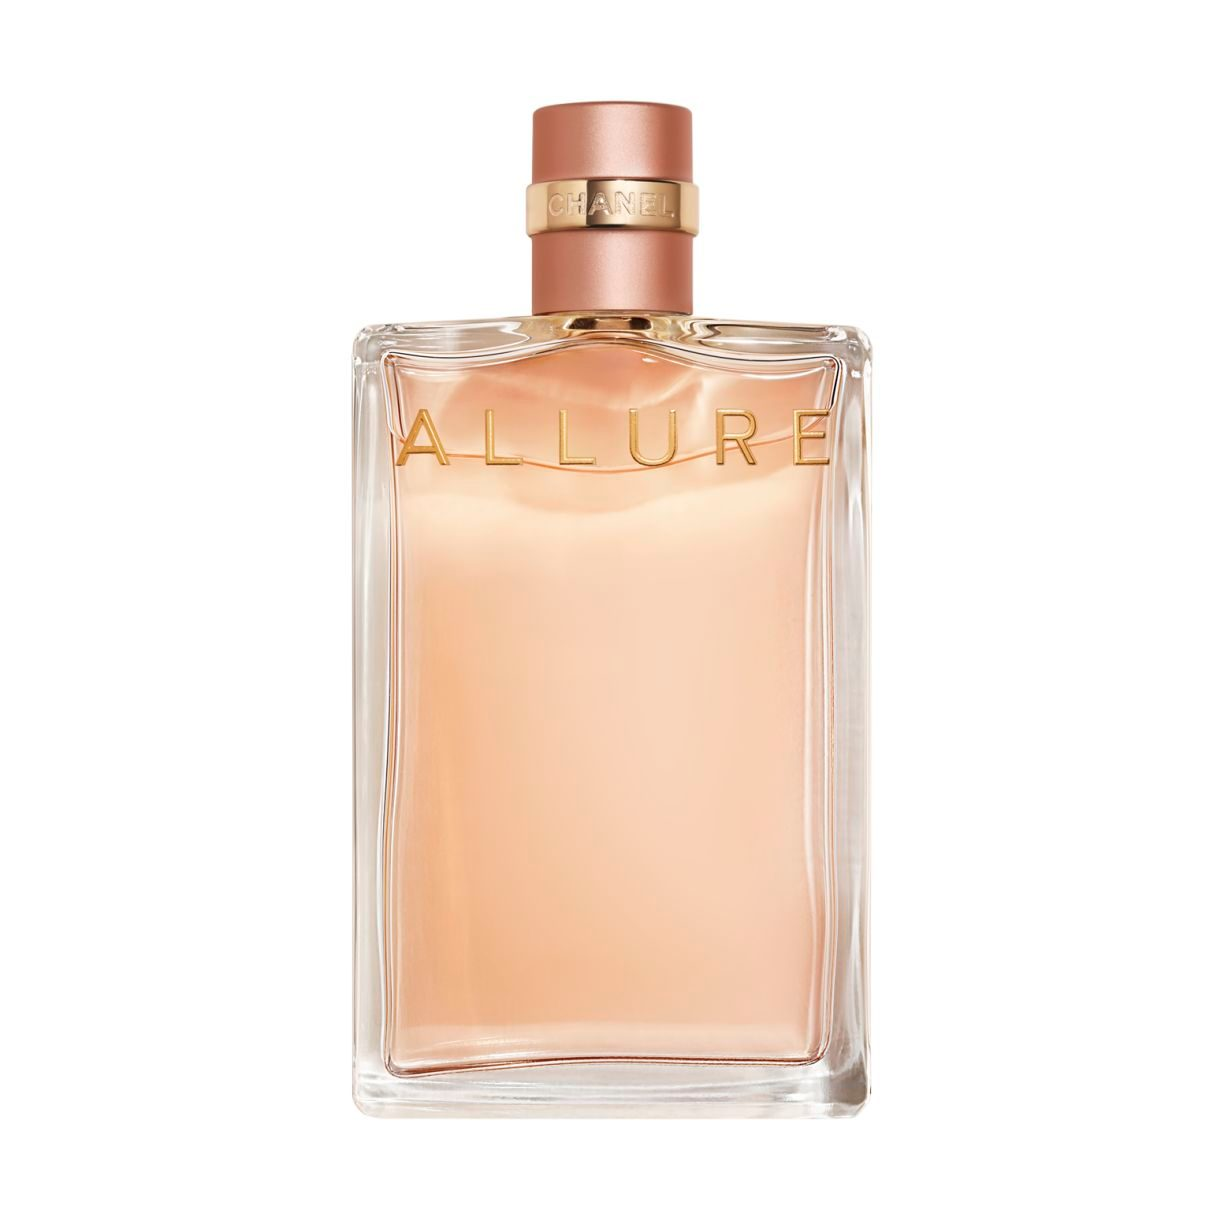 ALLURE EAU DE PARFUM SPRAY 50ML